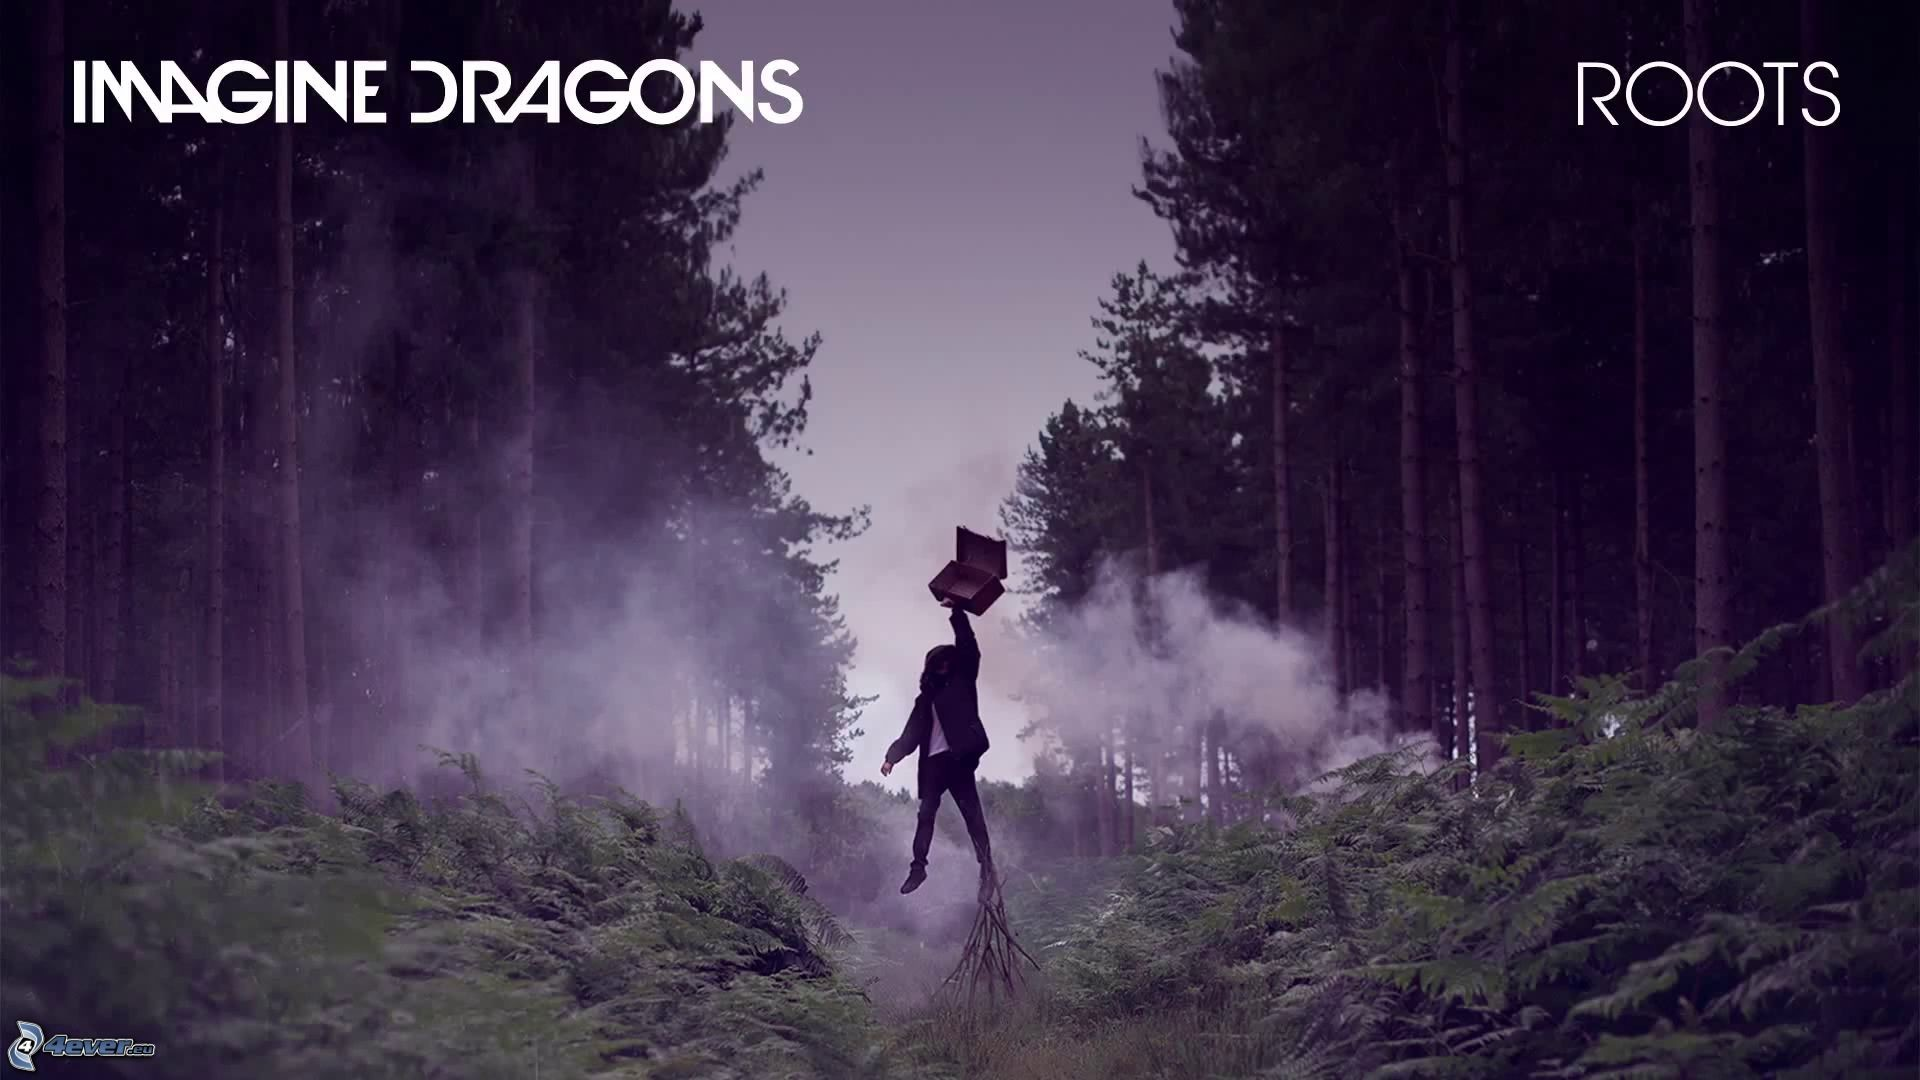 thunder imagine dragons video download